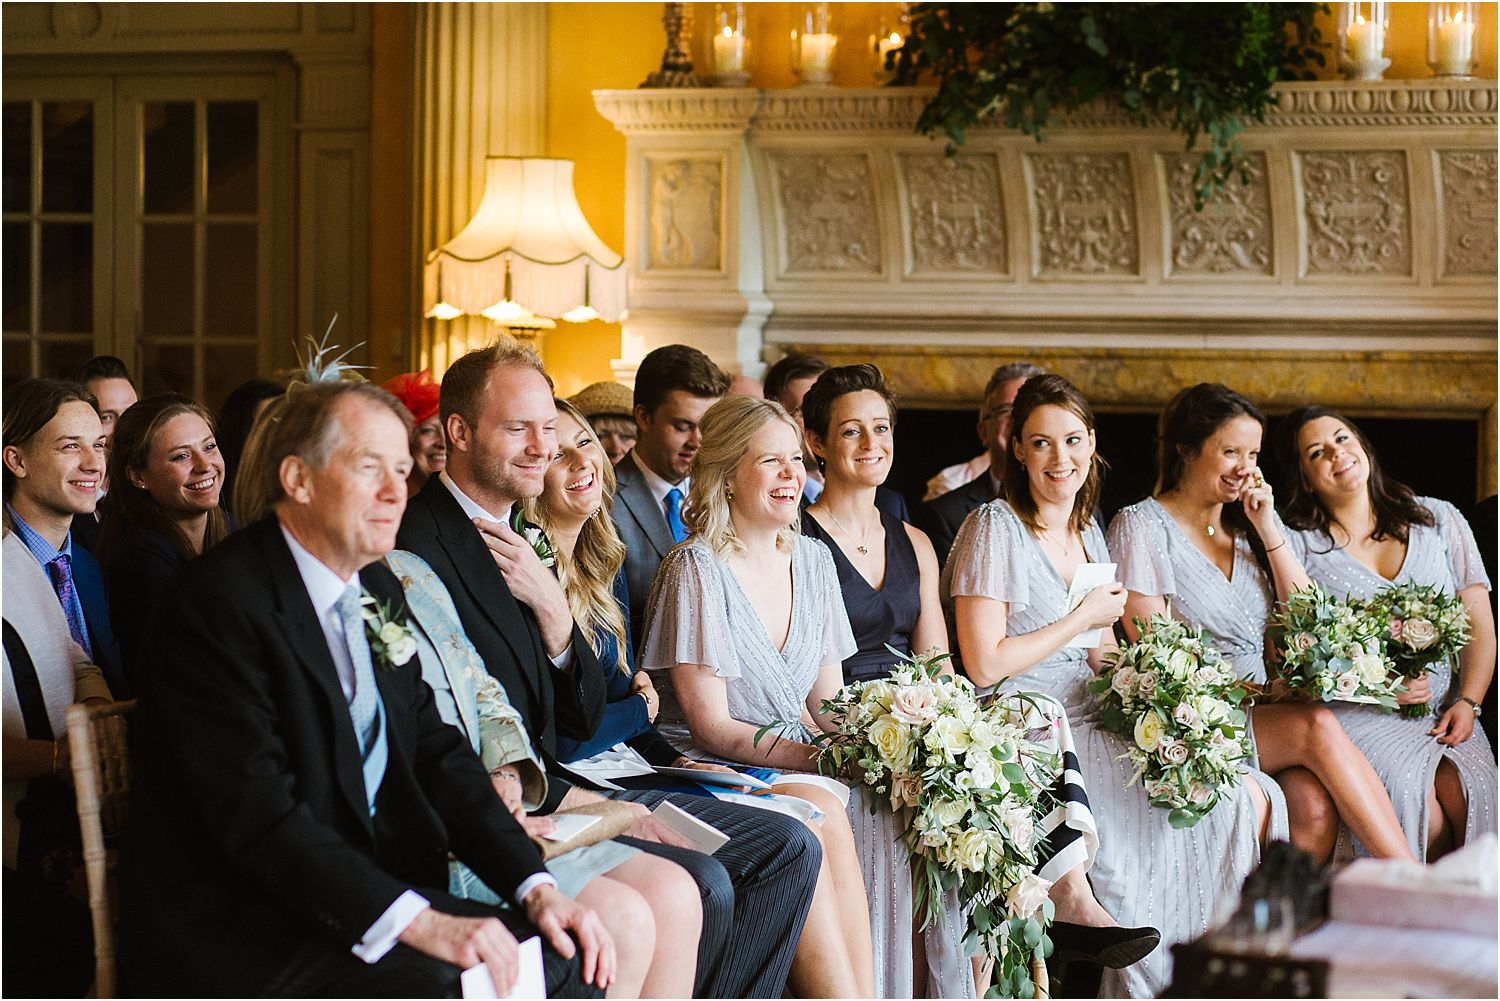 Bridesmaids and guests enjoy reading at wedding ceremony at Hampton Court House